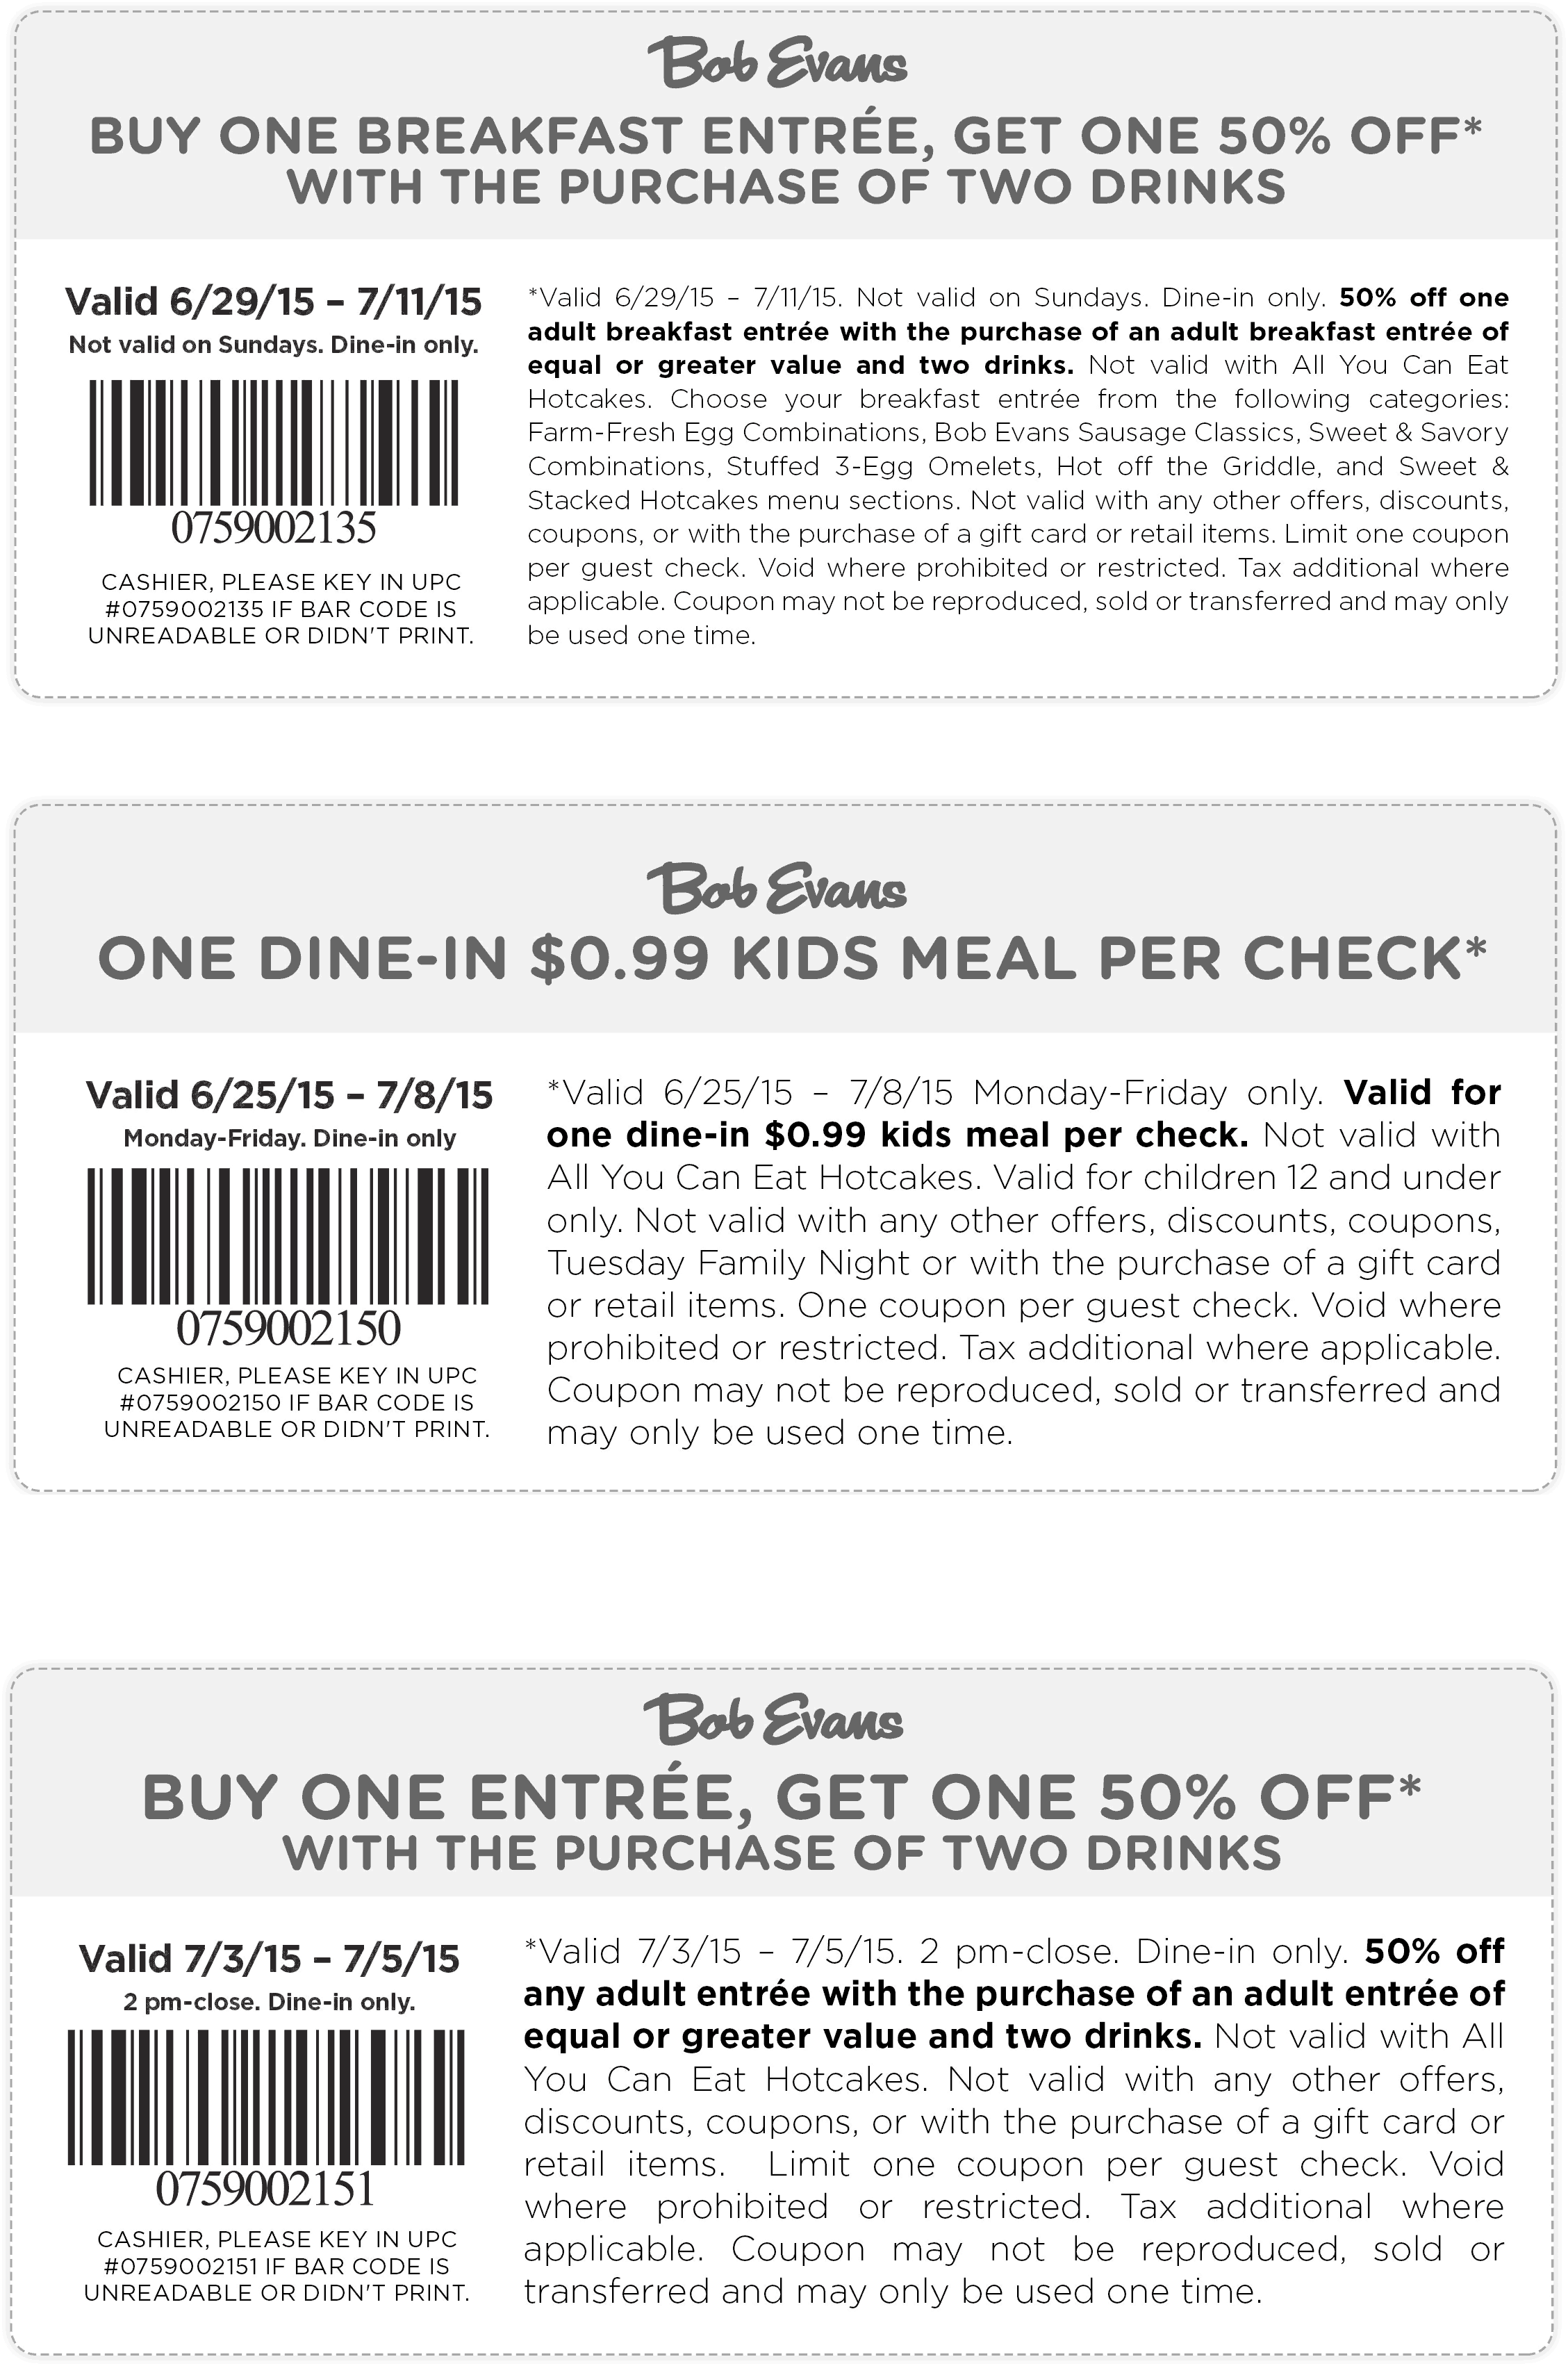 Bob Evans Coupon February 2017 Second breakfast 50% off + a kids meal for a buck at Bob Evans